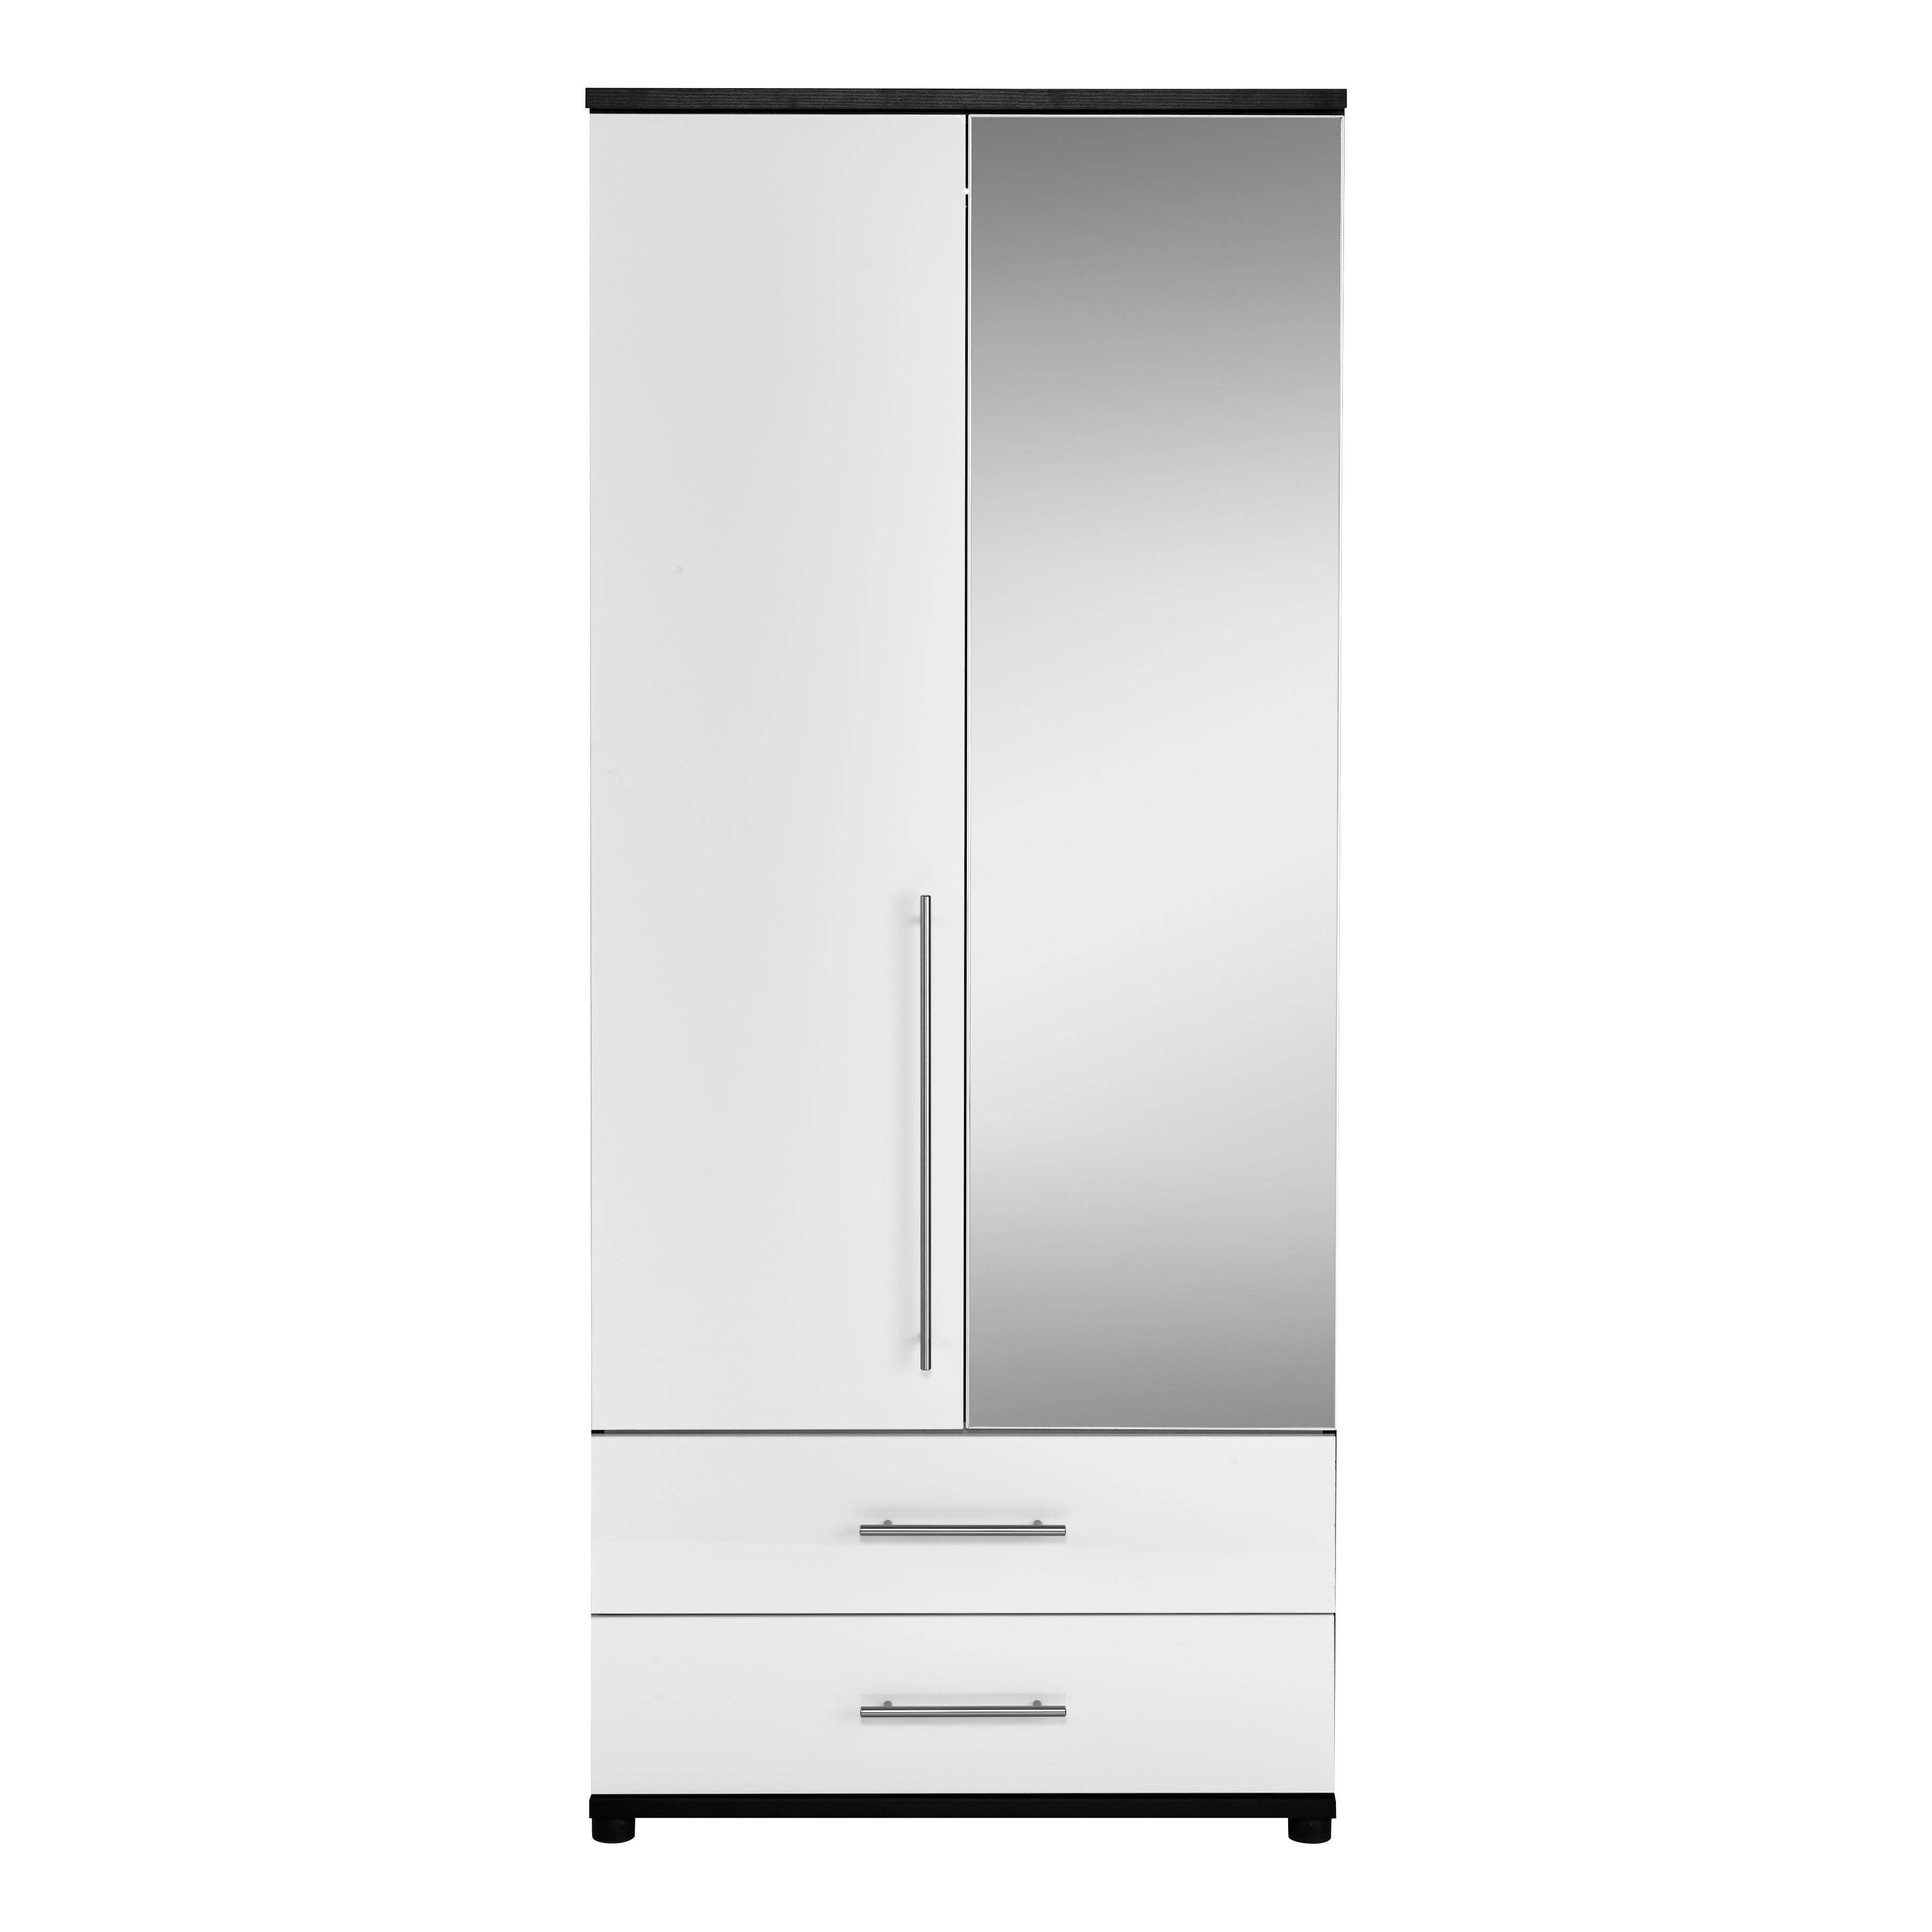 Kt Gloss 2 Door 2 Drawer Mirrored Wardrobe | Contemporary Bedroom throughout White 2 Door Wardrobes With Drawers (Image 6 of 15)